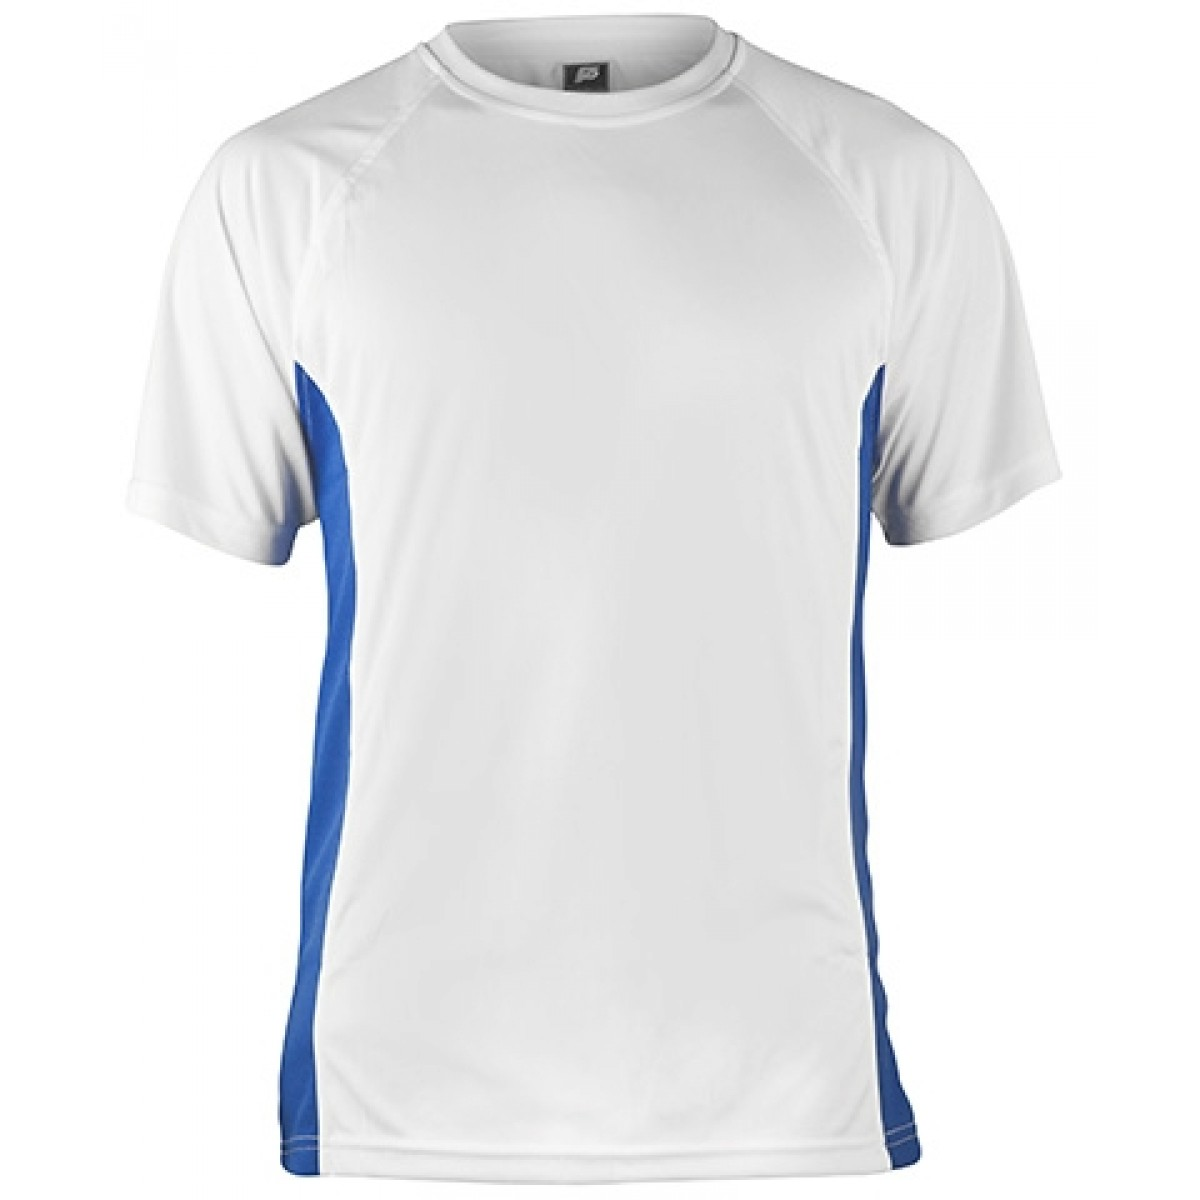 Short Sleeve White Performance With Blue Side Insert-White/Blue-L